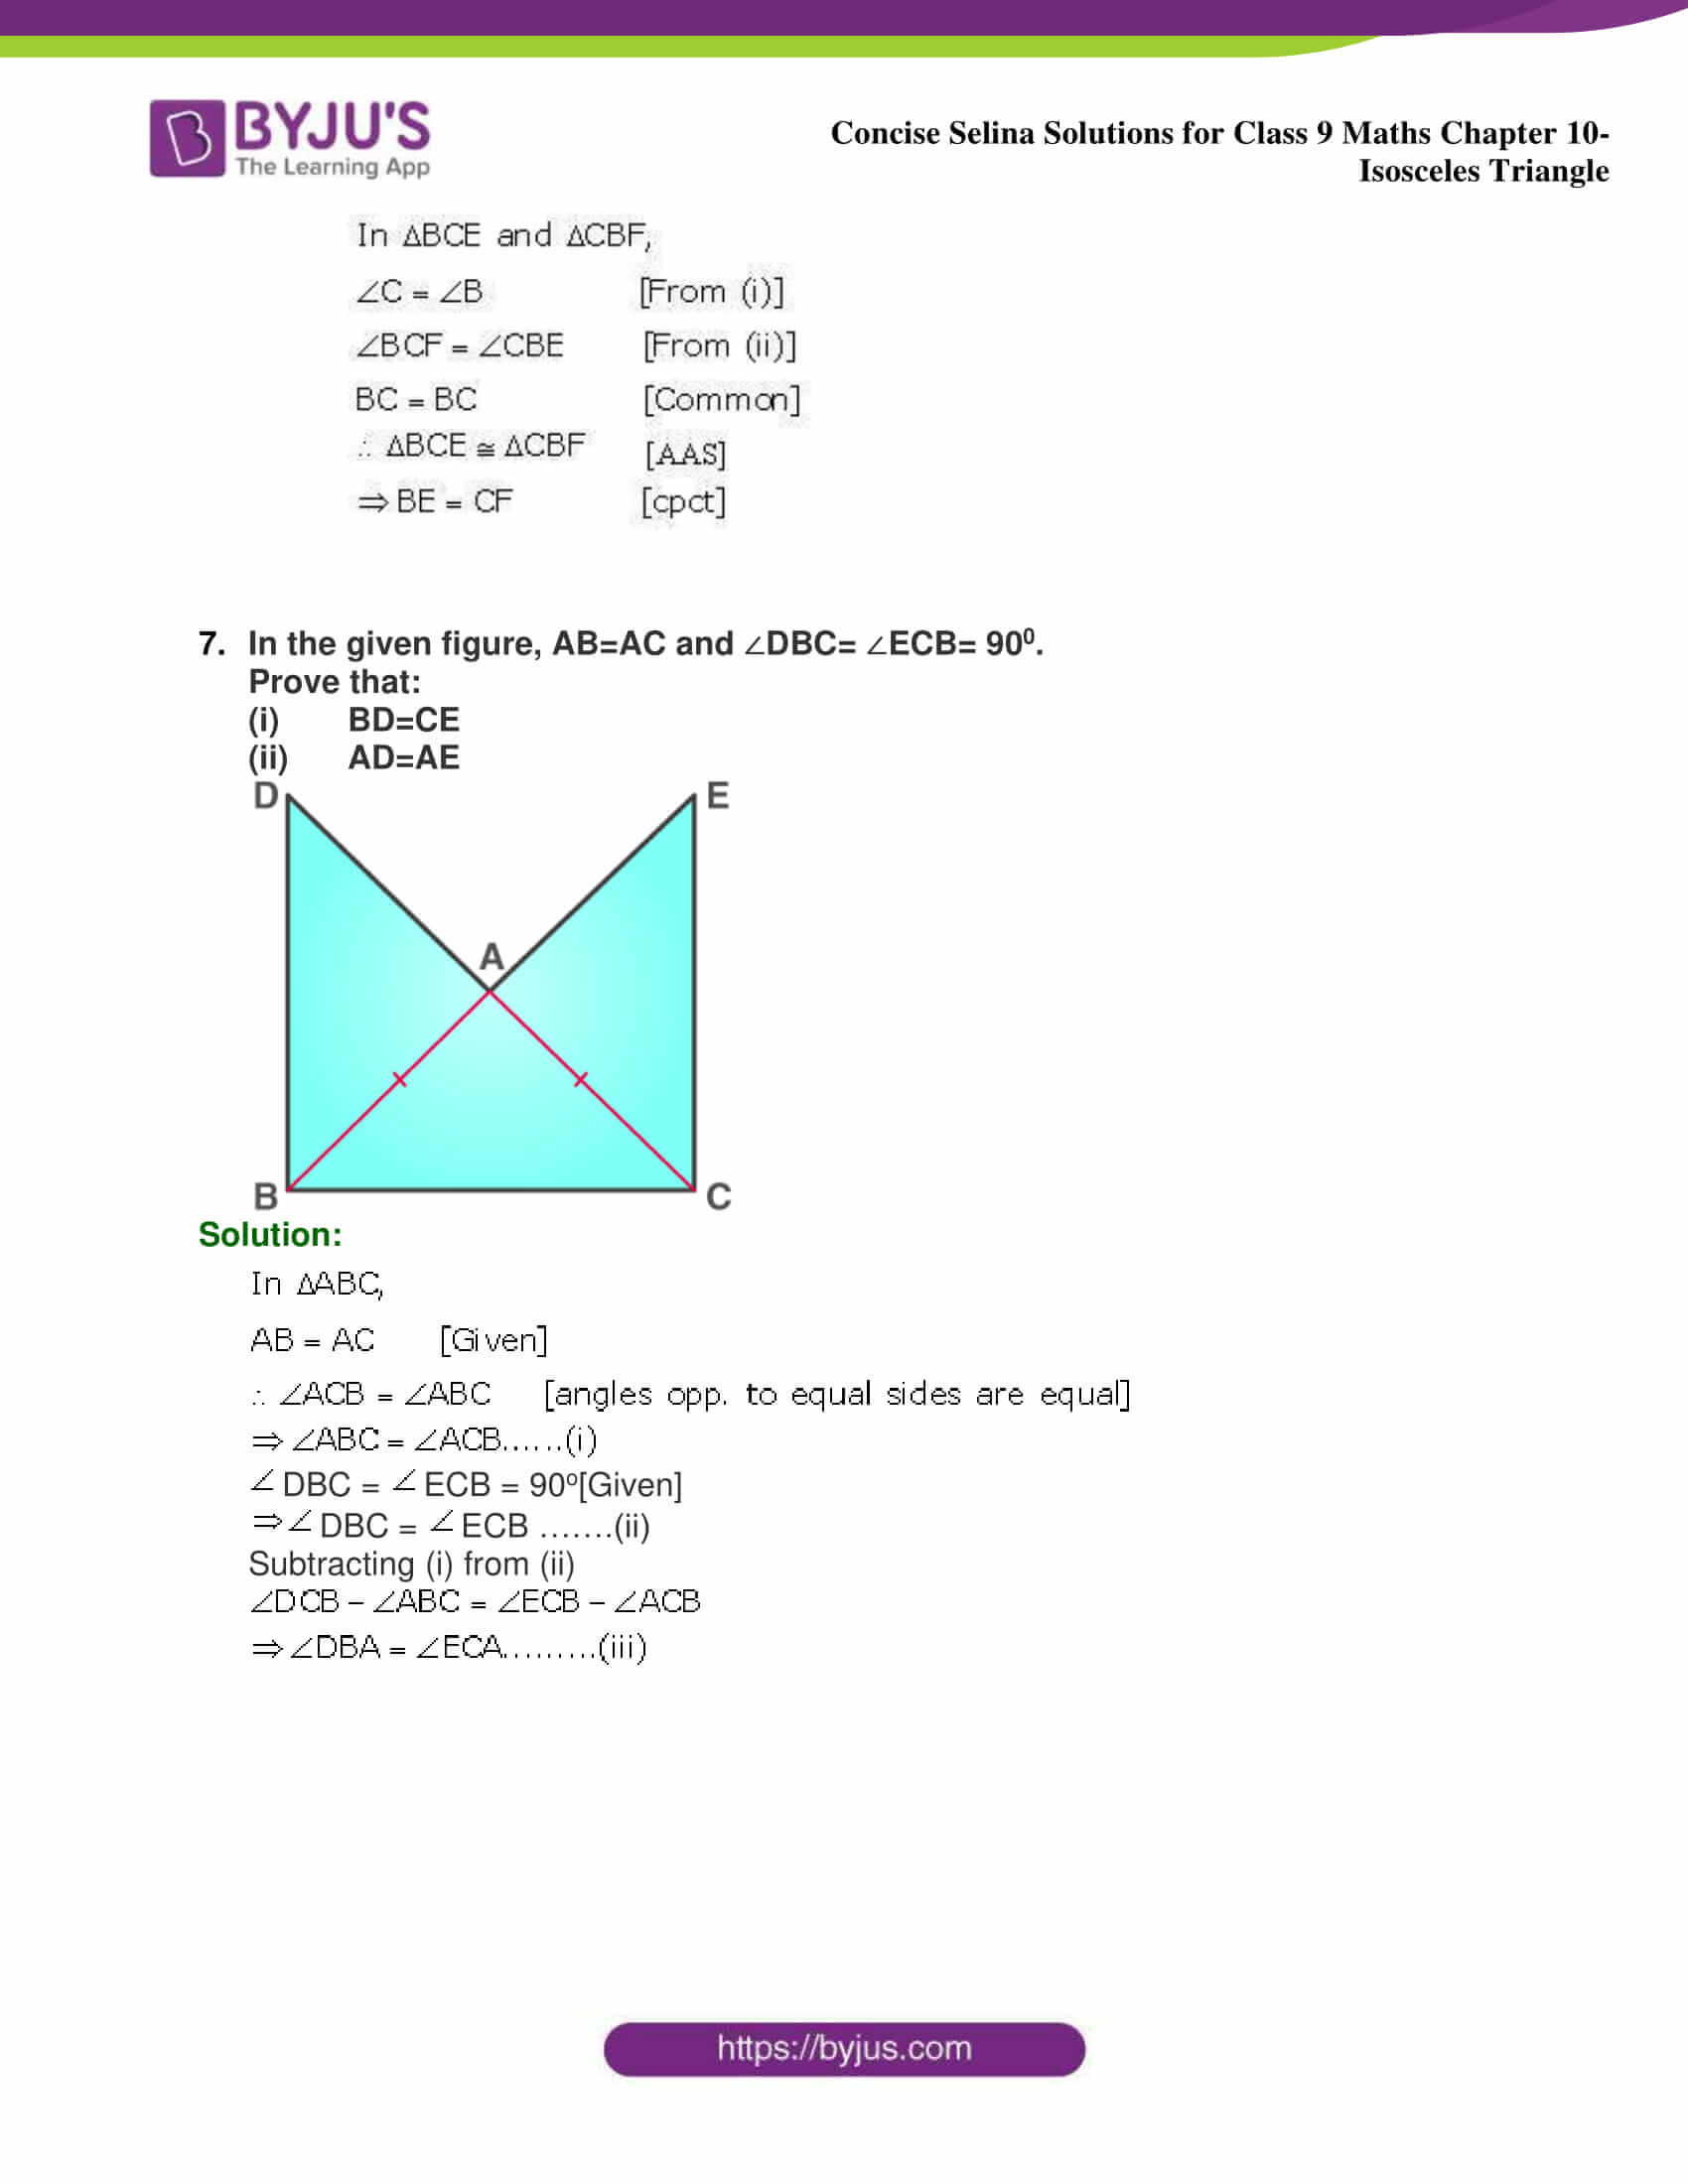 selina Solutions for Class 9 Maths Chapter 10 part 27